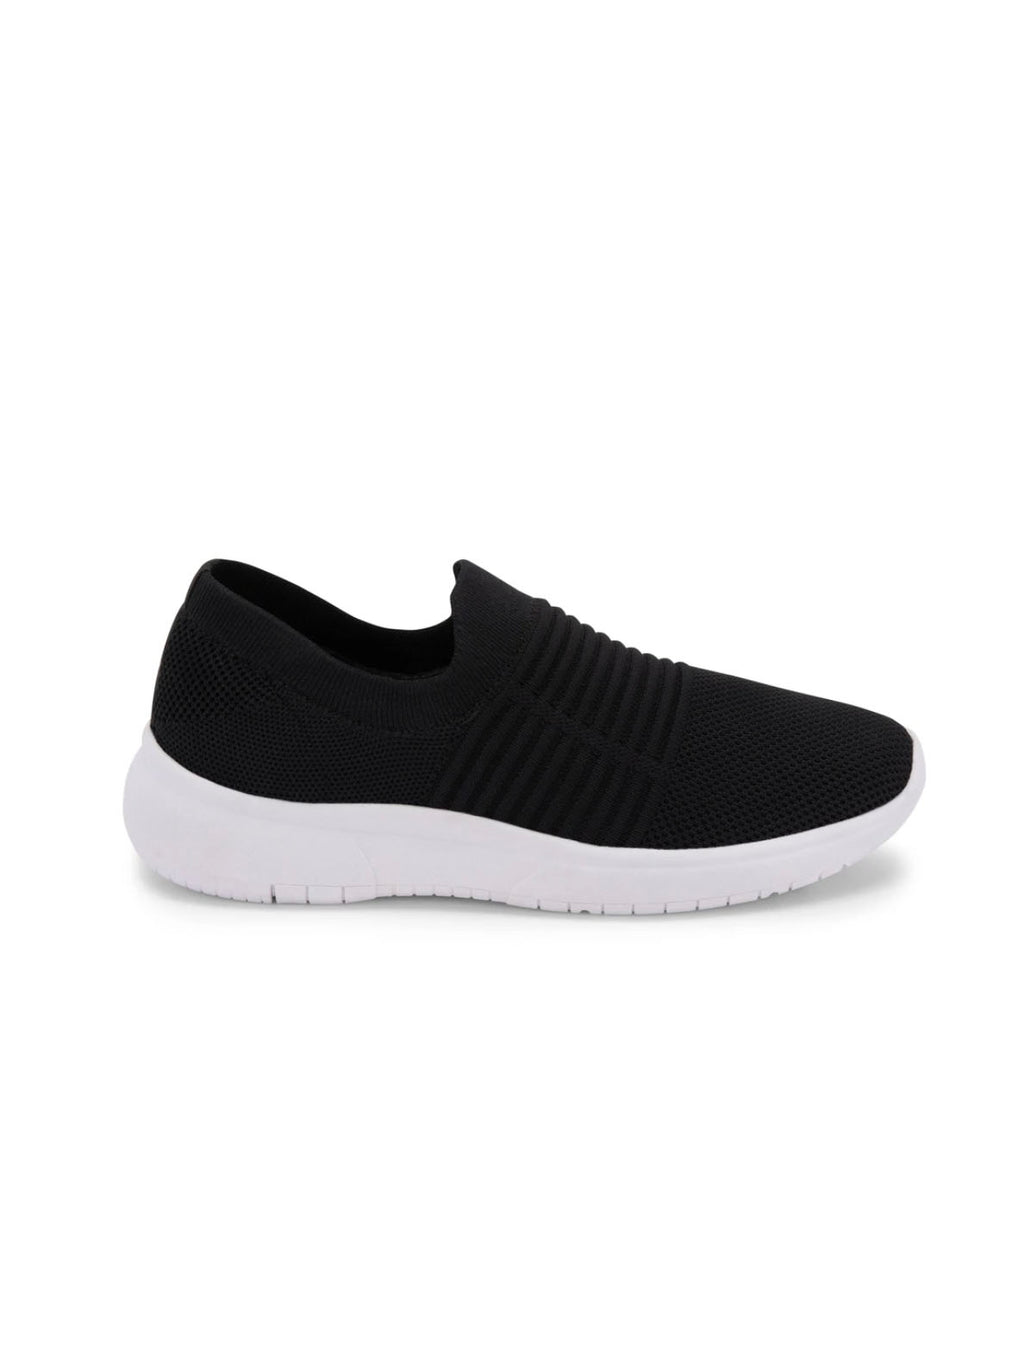 Blondo Karen Knit Slip On Sneaker in Black